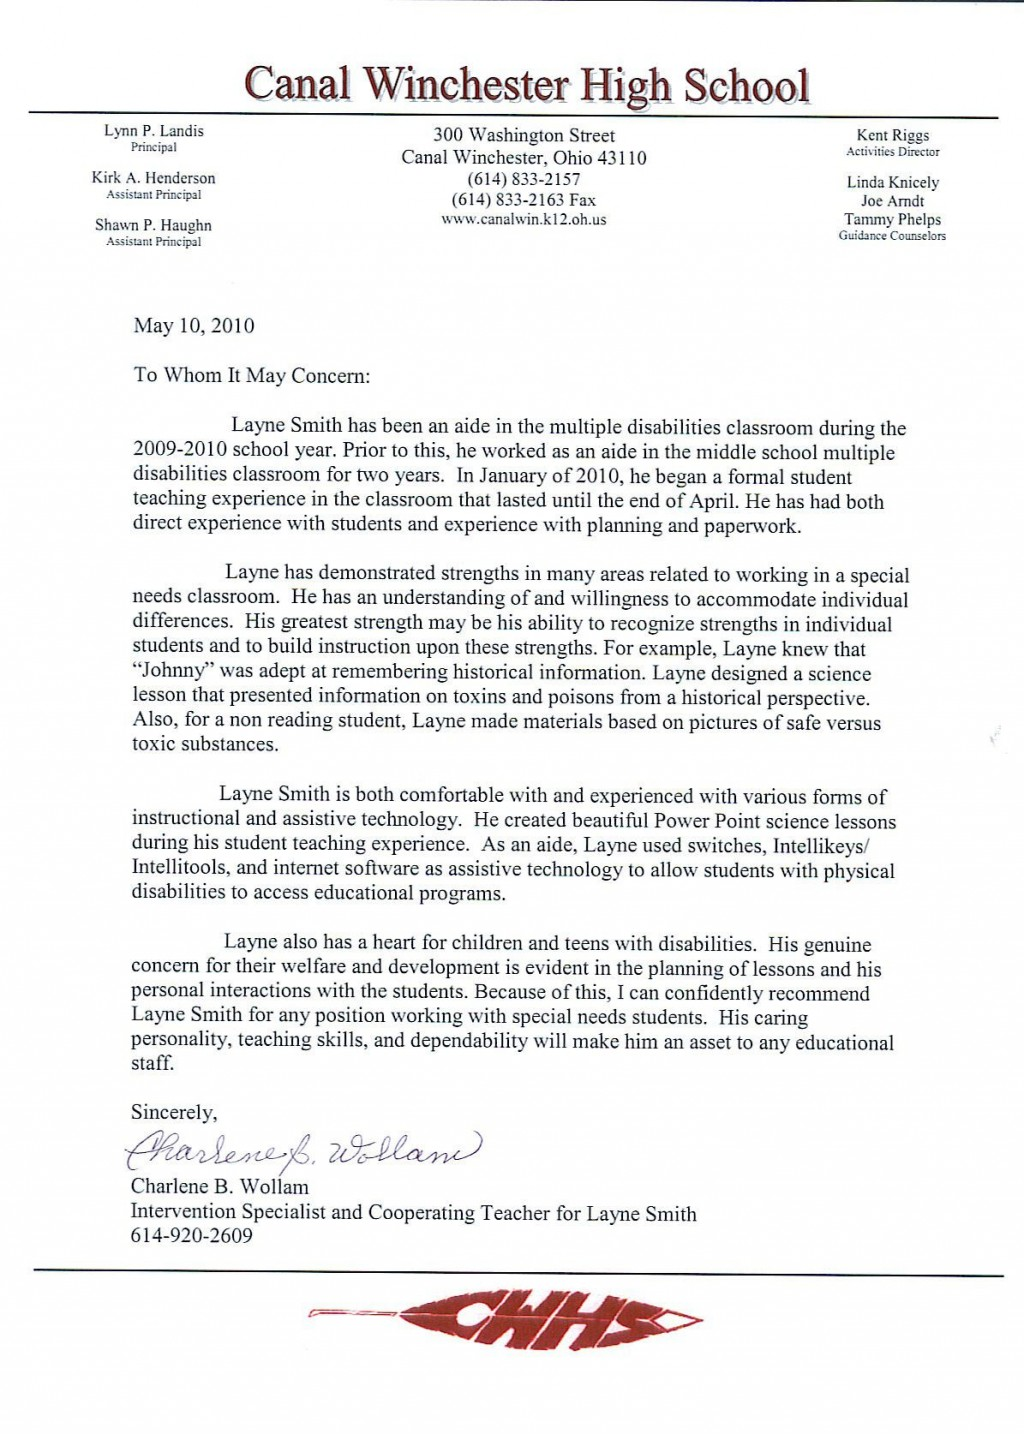 005 Magnificent Letter Of Recommendation For Student Teacher From Cooperating Template High Resolution Large